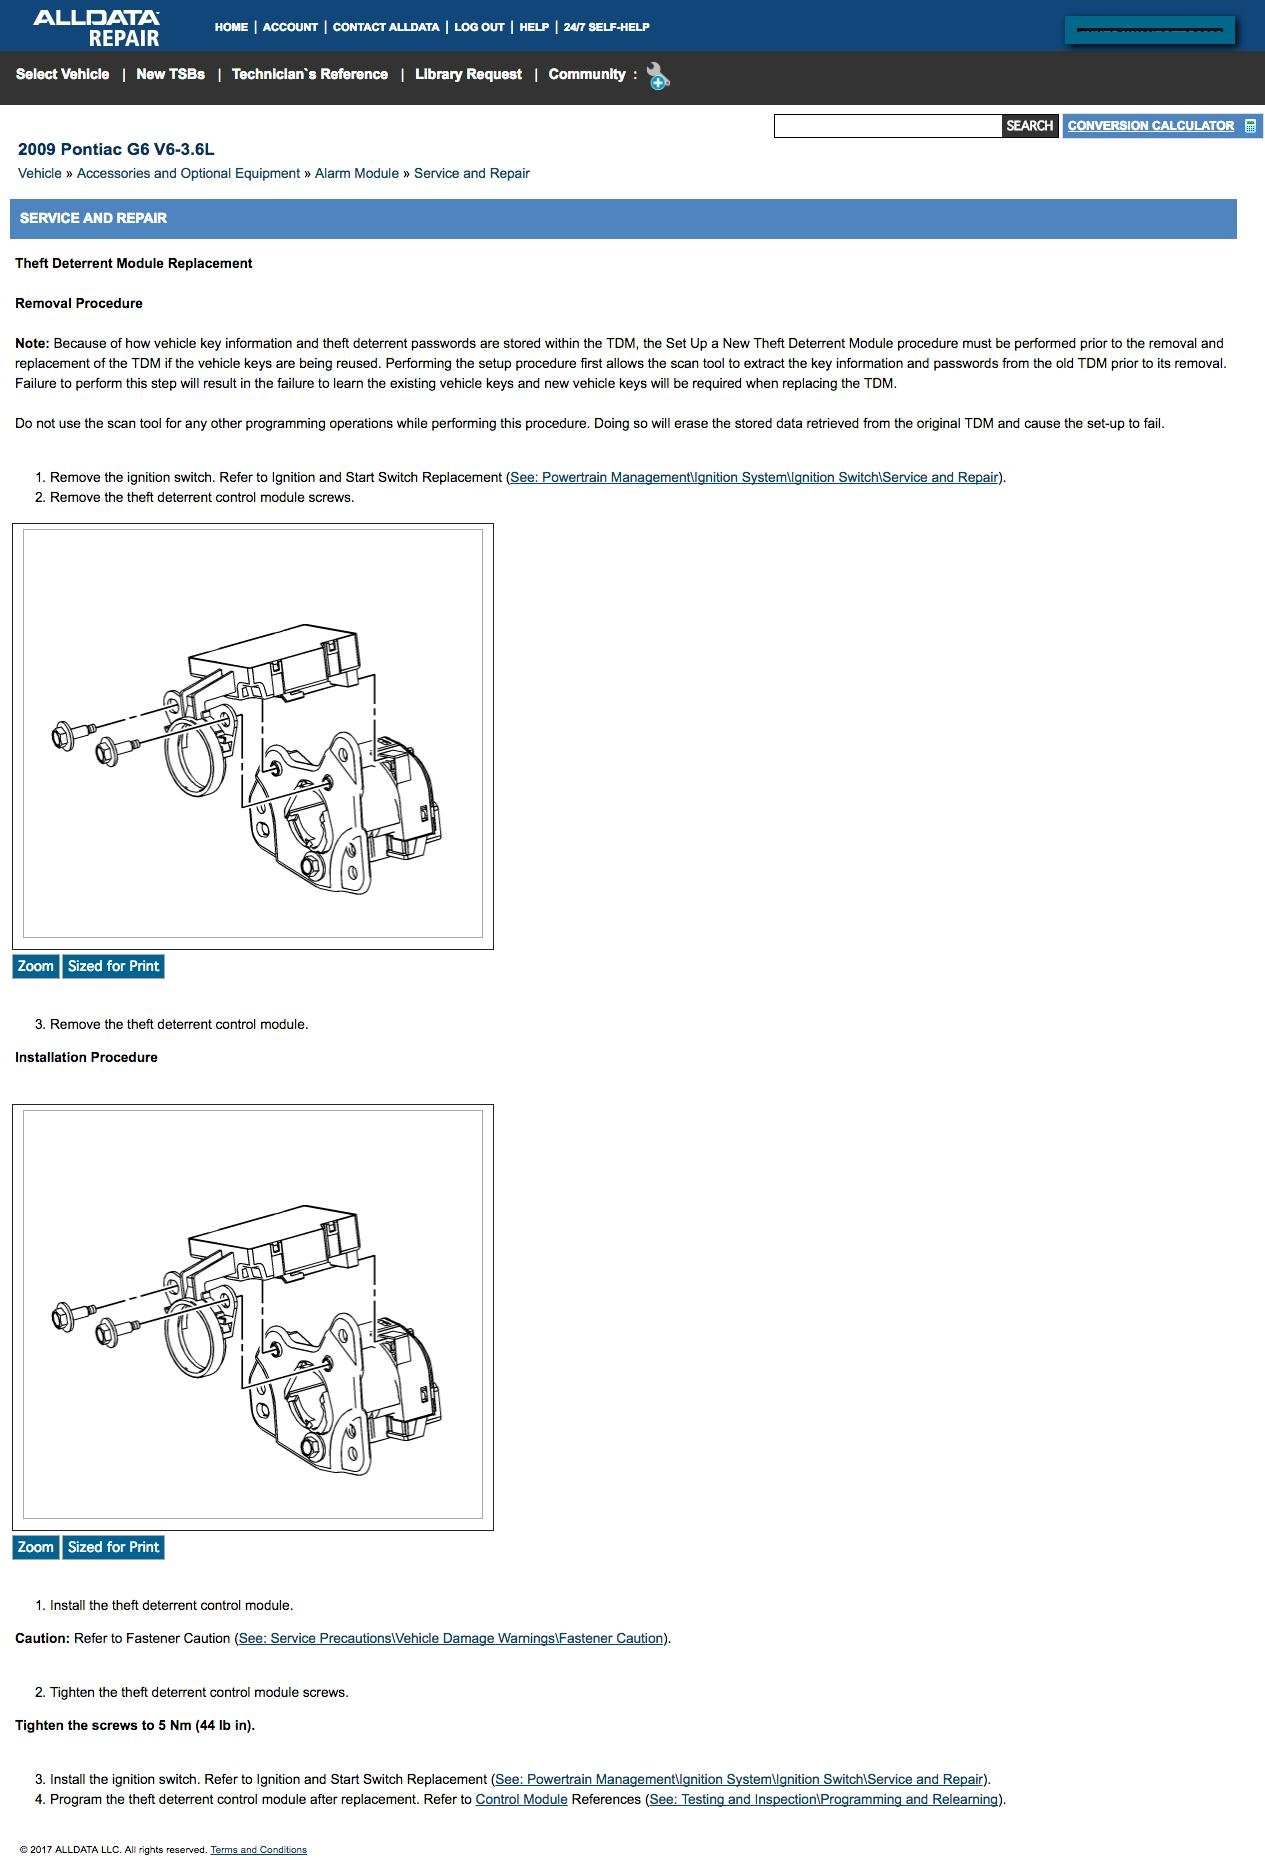 I Need To Replace The Ignition Switch In My 2009 Gt G6 Sometimes Pontiac Fuel Filter 6065bb99 3c10 4a32 Ab75